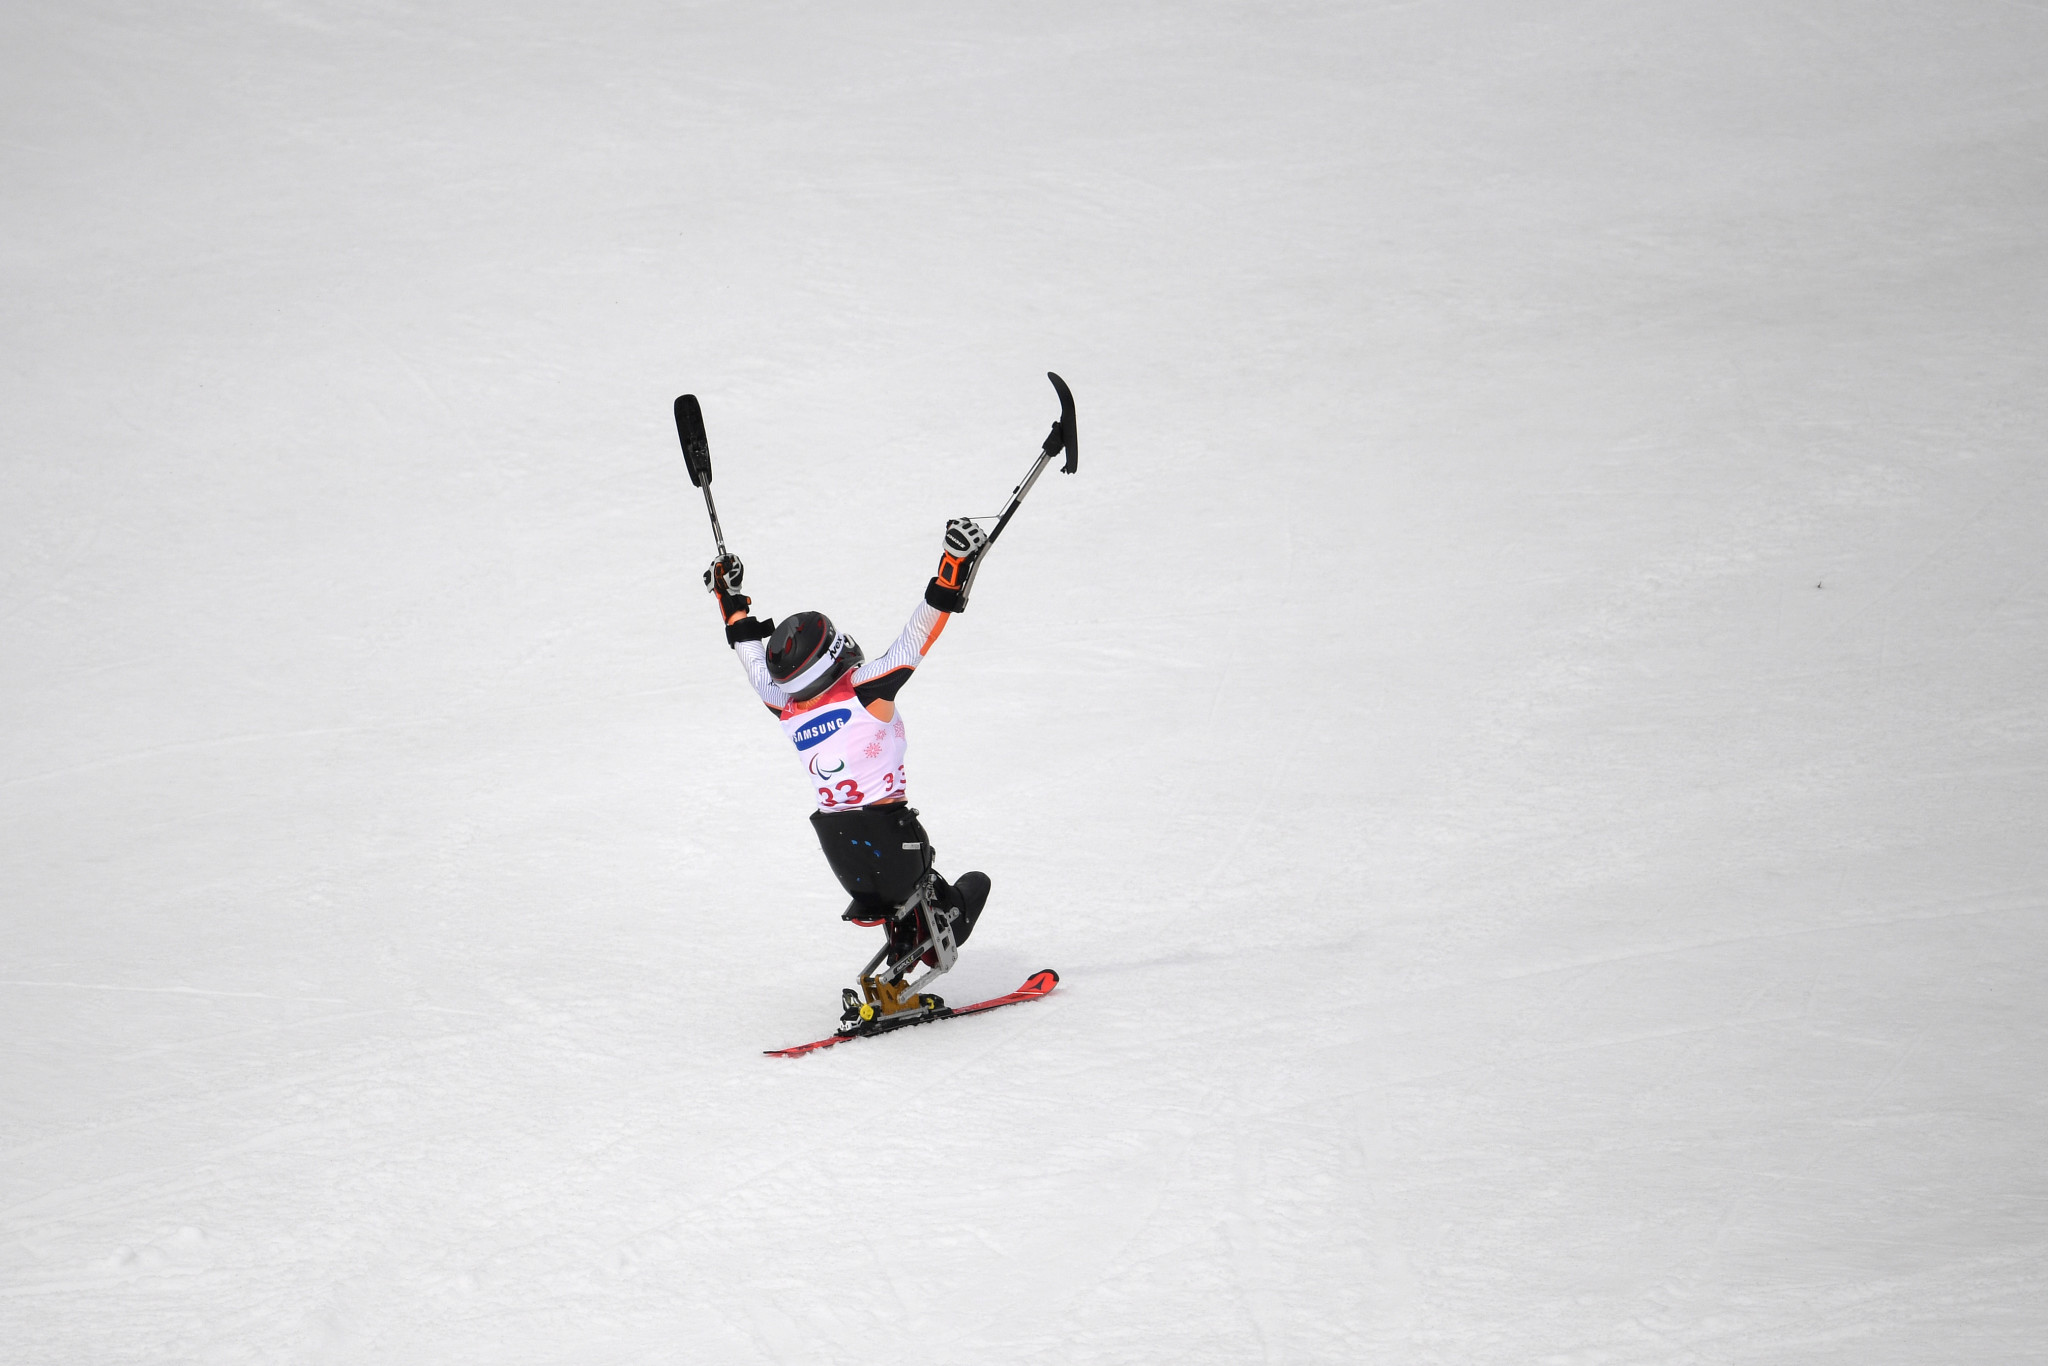 Germany's Anna-Lena Forster won her first-ever Paralympic title on the last day of Pyeongchang 2018 ©Getty Images